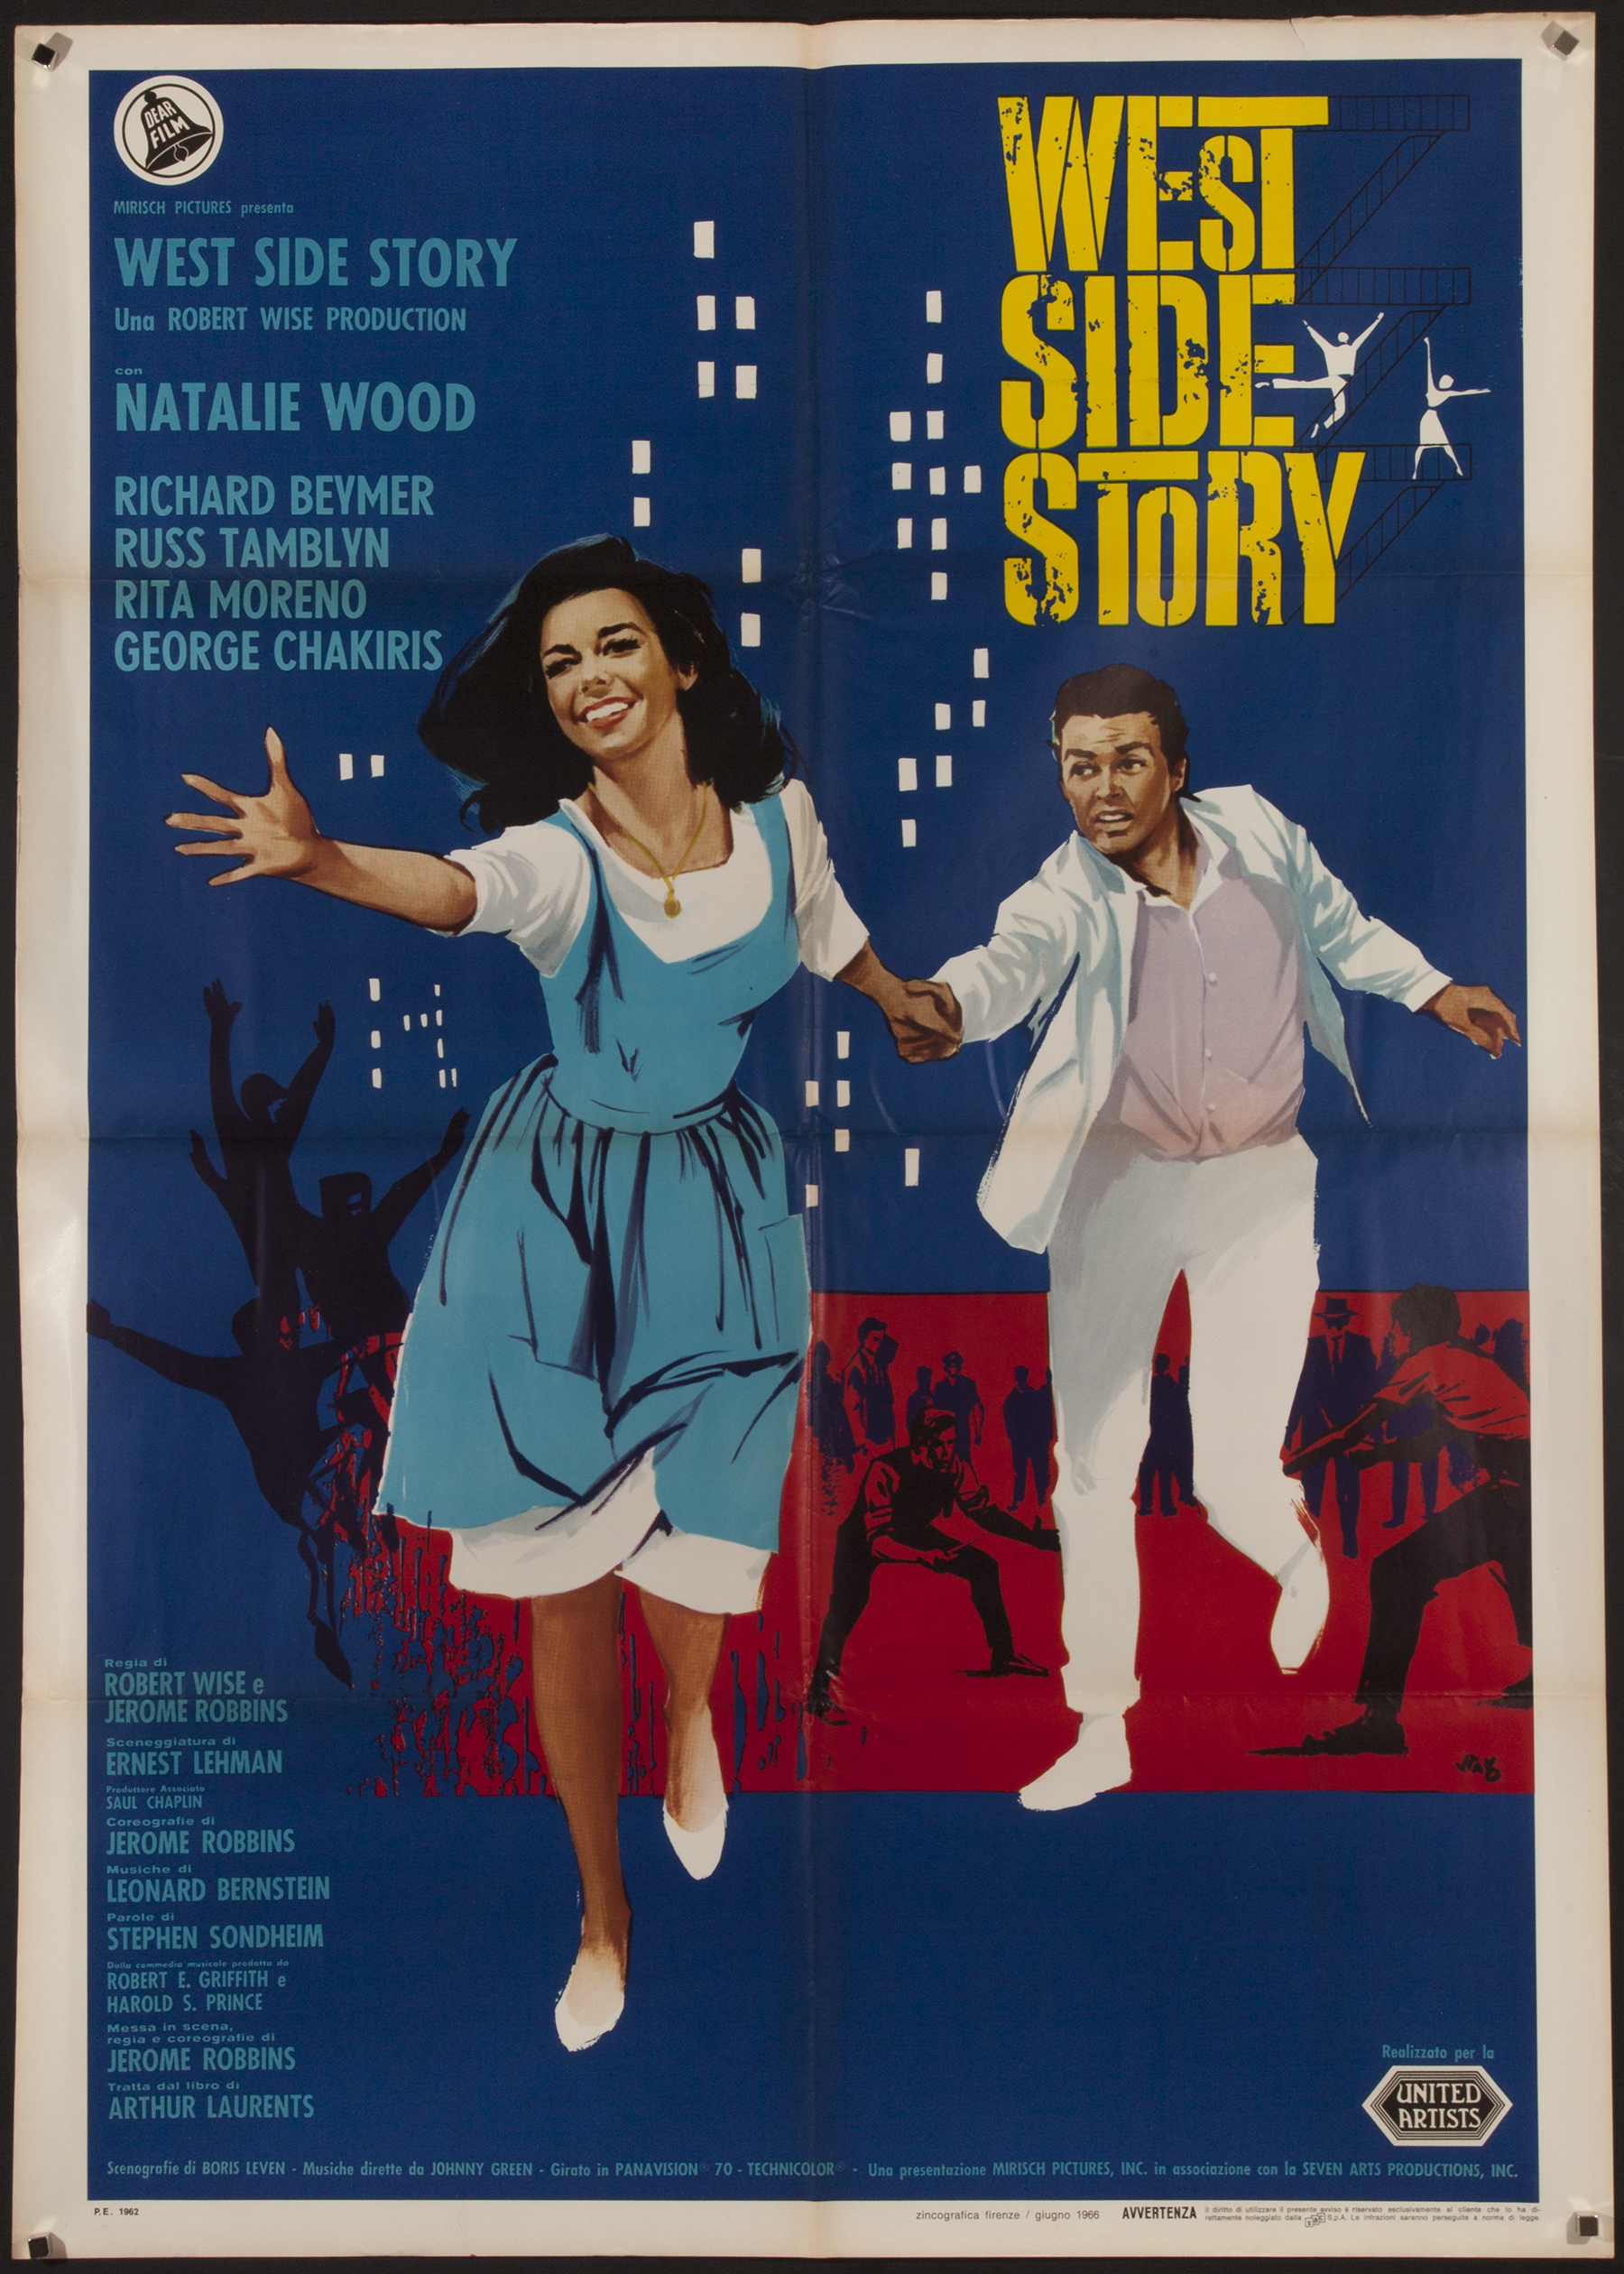 Vintage 1966 Italian West Side Story Film Poster Chairish